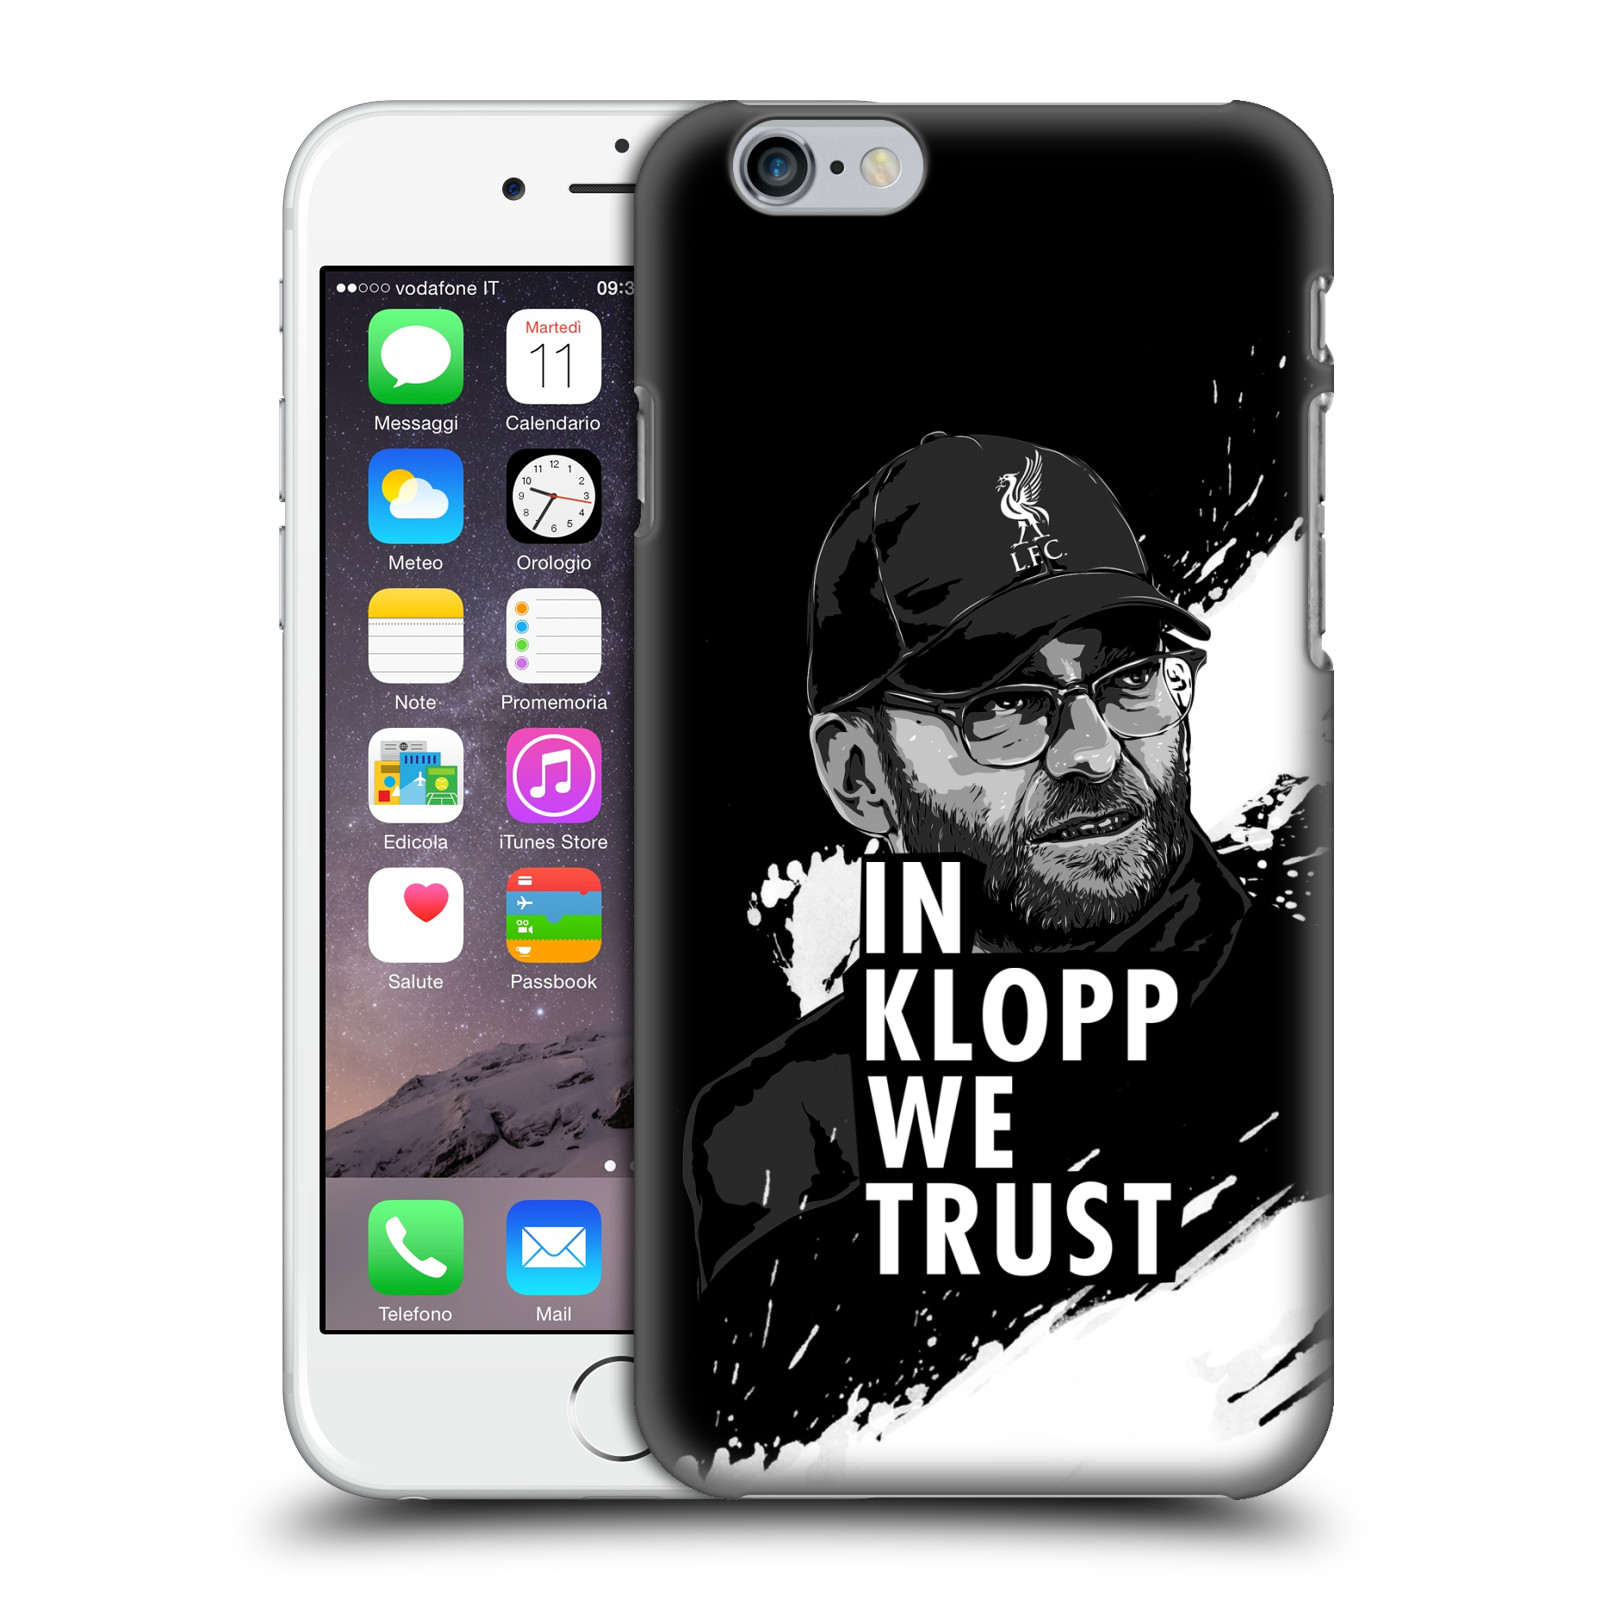 Liverpool FC LFC Jurgen Klopp Illustrations-Stare Black